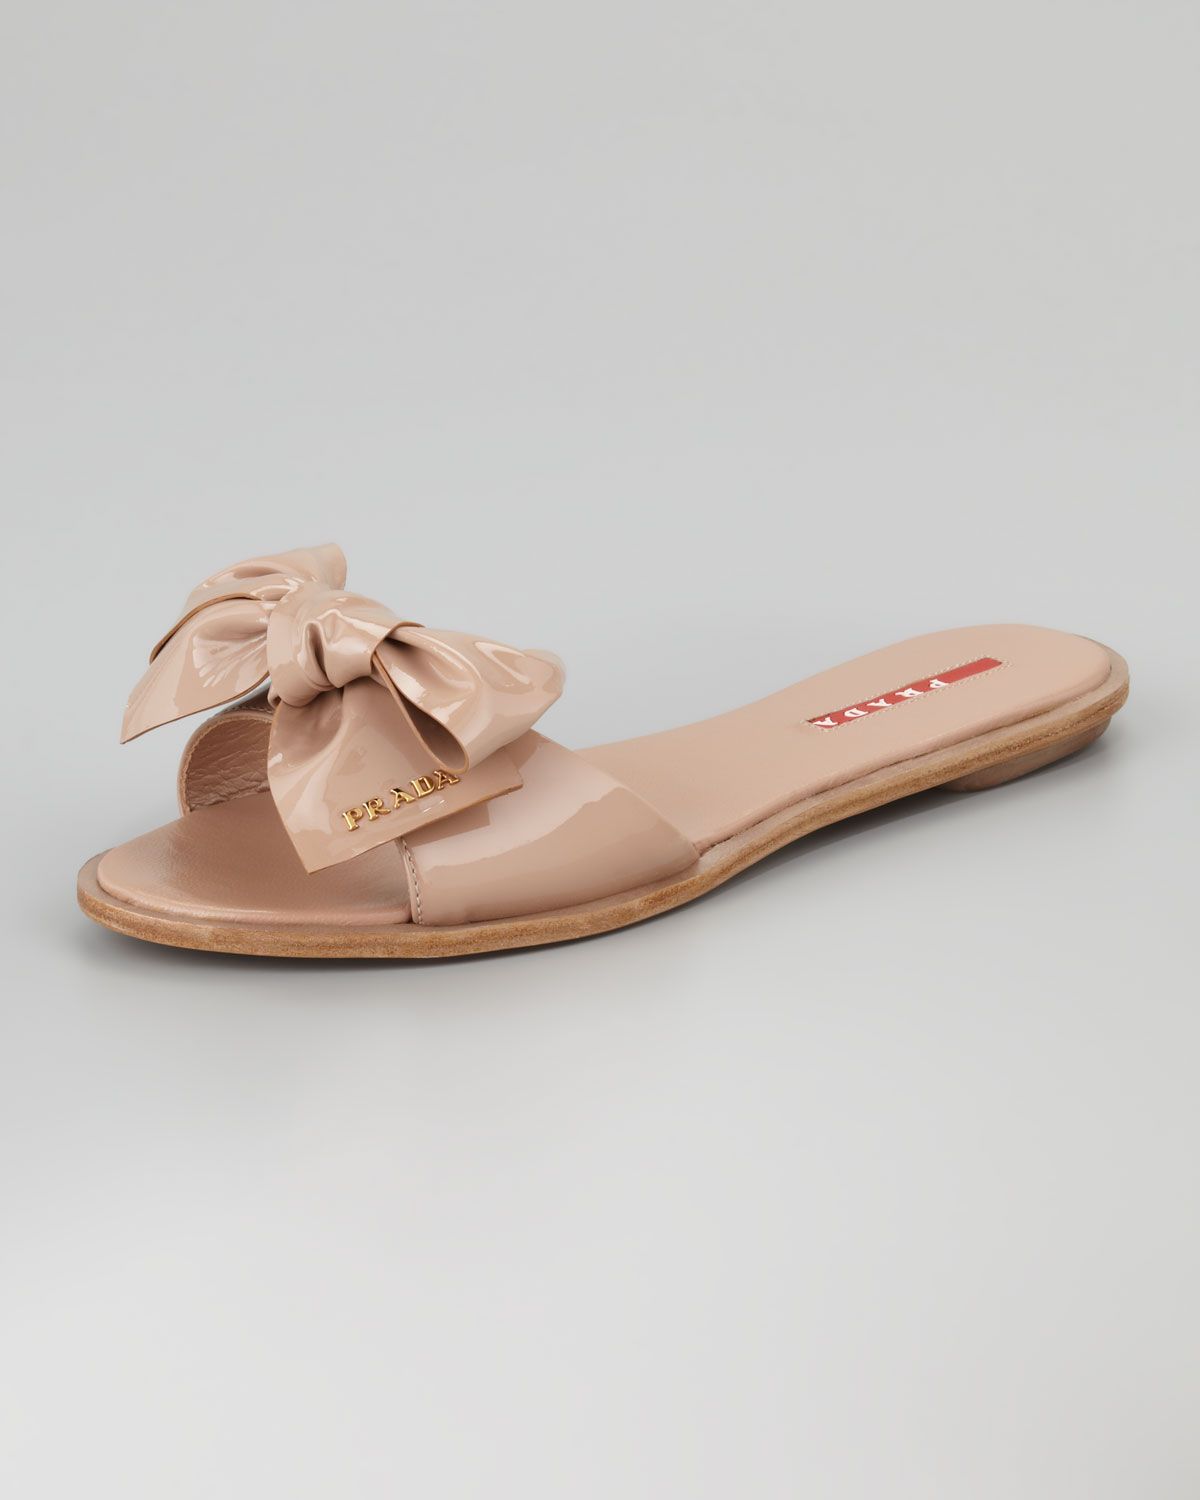 Prada Patent Leather Bow Slide Sandal in Beige (cipria) | Lyst